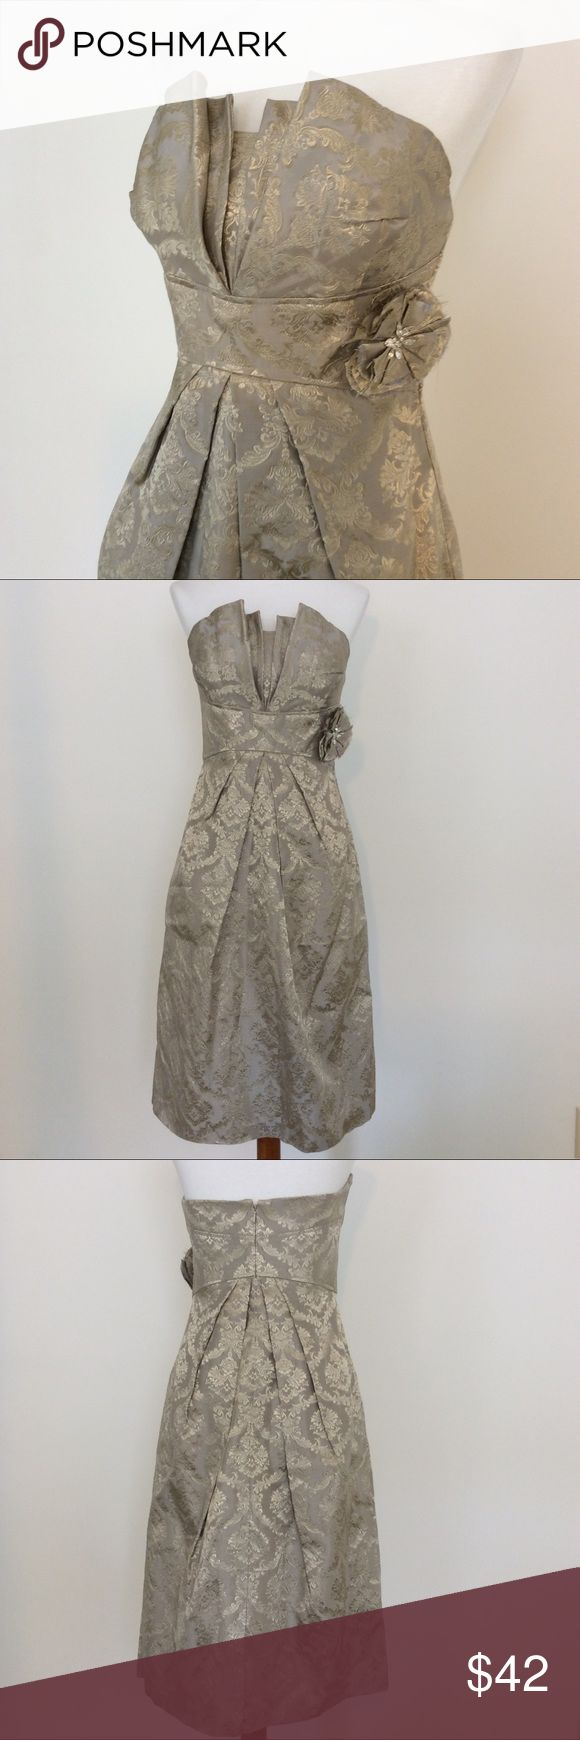 Watters & Watters Metallic Brocade Dress 6 Stunning metallic strapless dress by Watters & Watters. Size 6. Detachable floral pin. Great condition. Perfect for a wedding guest! Watters & Watters Dresses Strapless